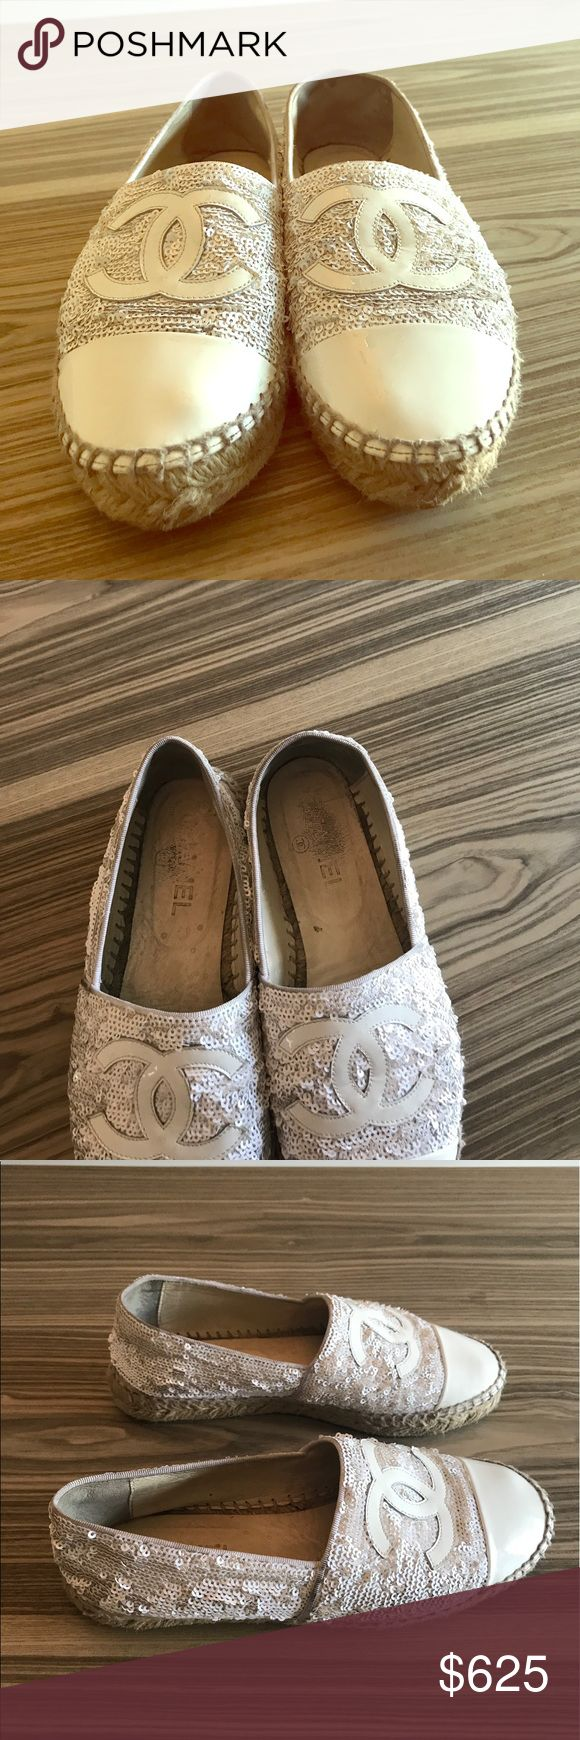 Chanel espadrilles I have a pair AUTHENTIC chanel limited edition espadrilles for sale.  7/10 condition.  The inside is pretty worn in the inside but the outside is in very good condition!  Will come dustbag.  No longer available in stores. CHANEL Shoes Espadrilles